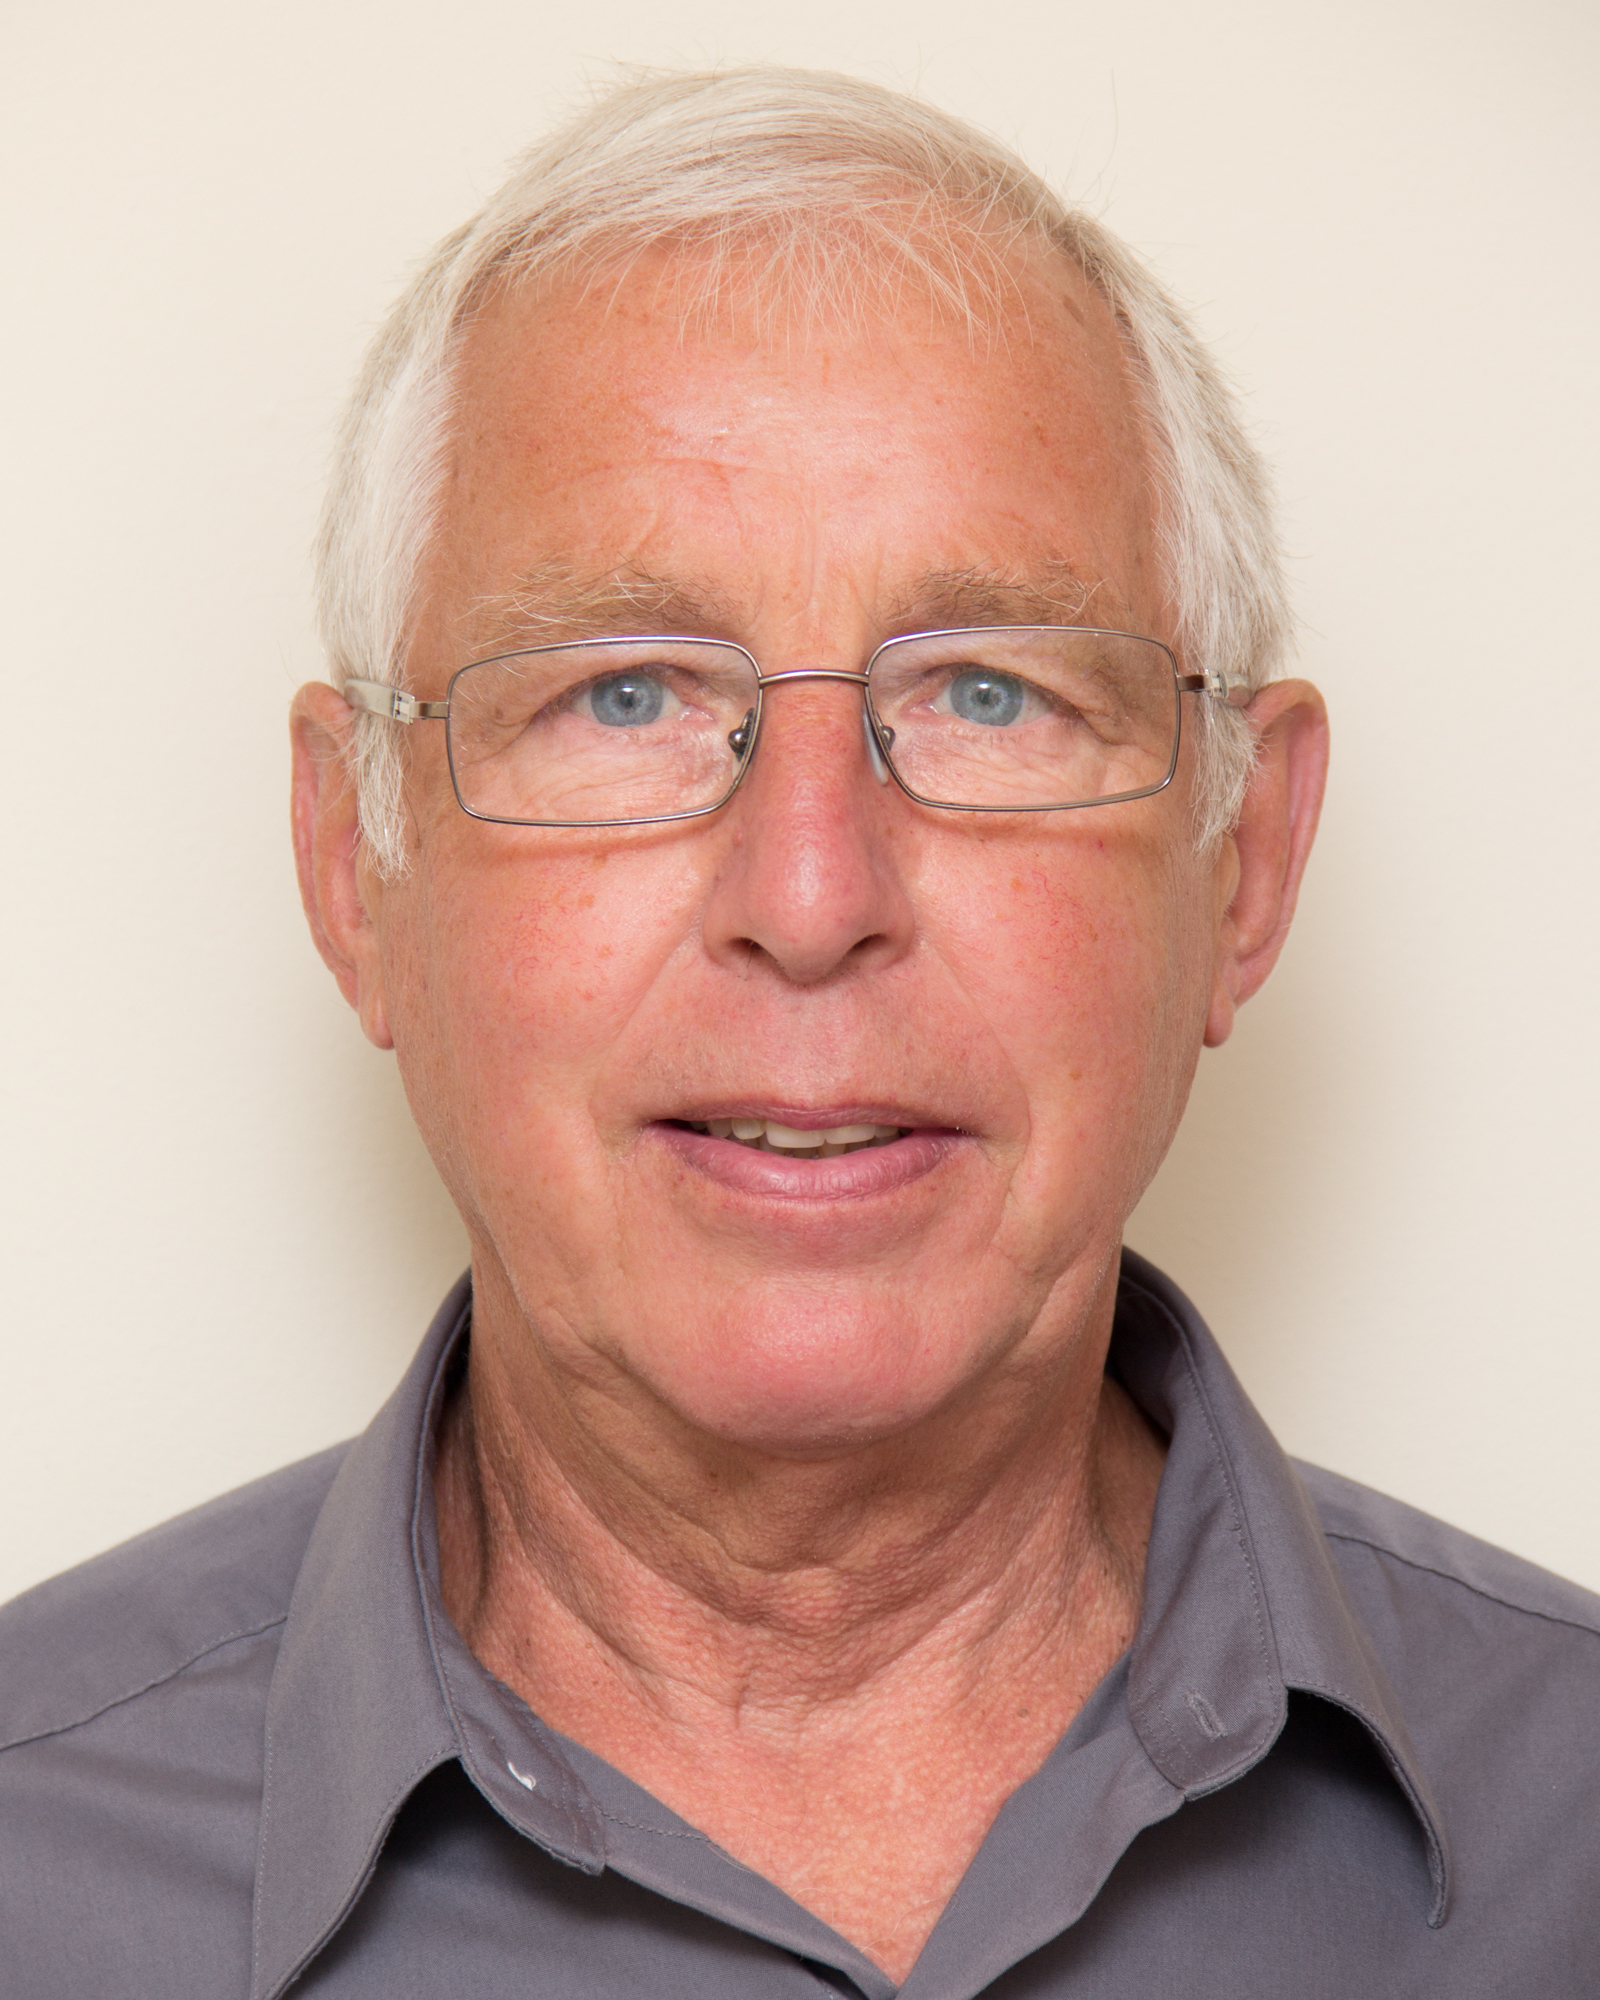 Frank has been volunteering at the Centre for many years and also helps out at fundraising functions.